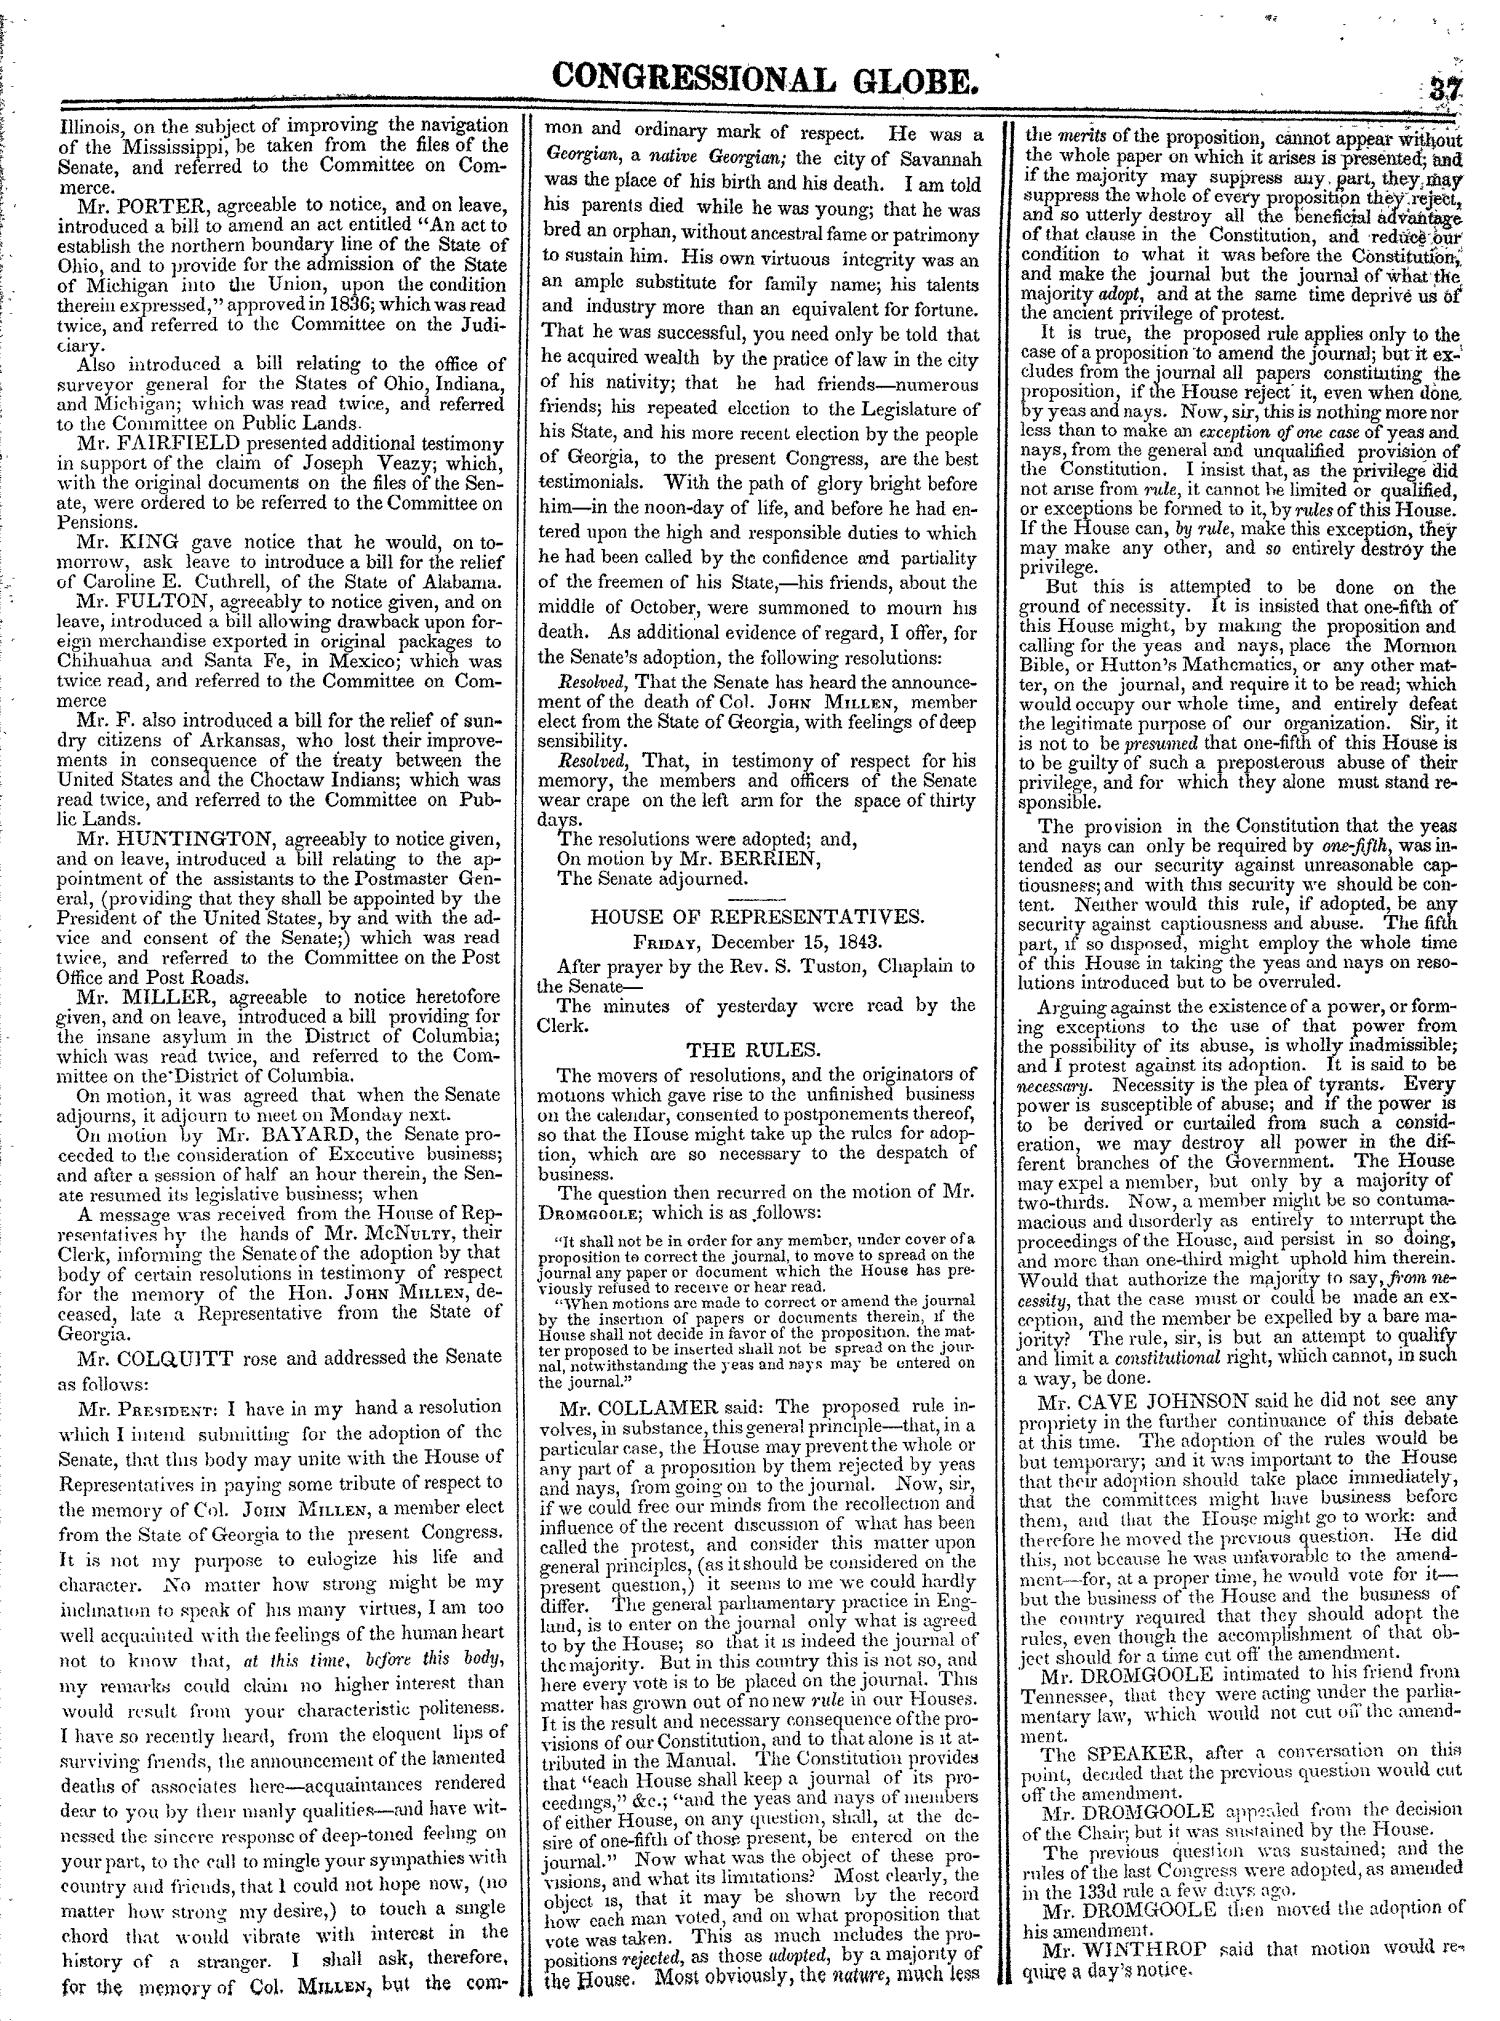 The Congressional Globe, Volume 13, Part 1: Twenty-Eighth Congress, First Session                                                                                                      37